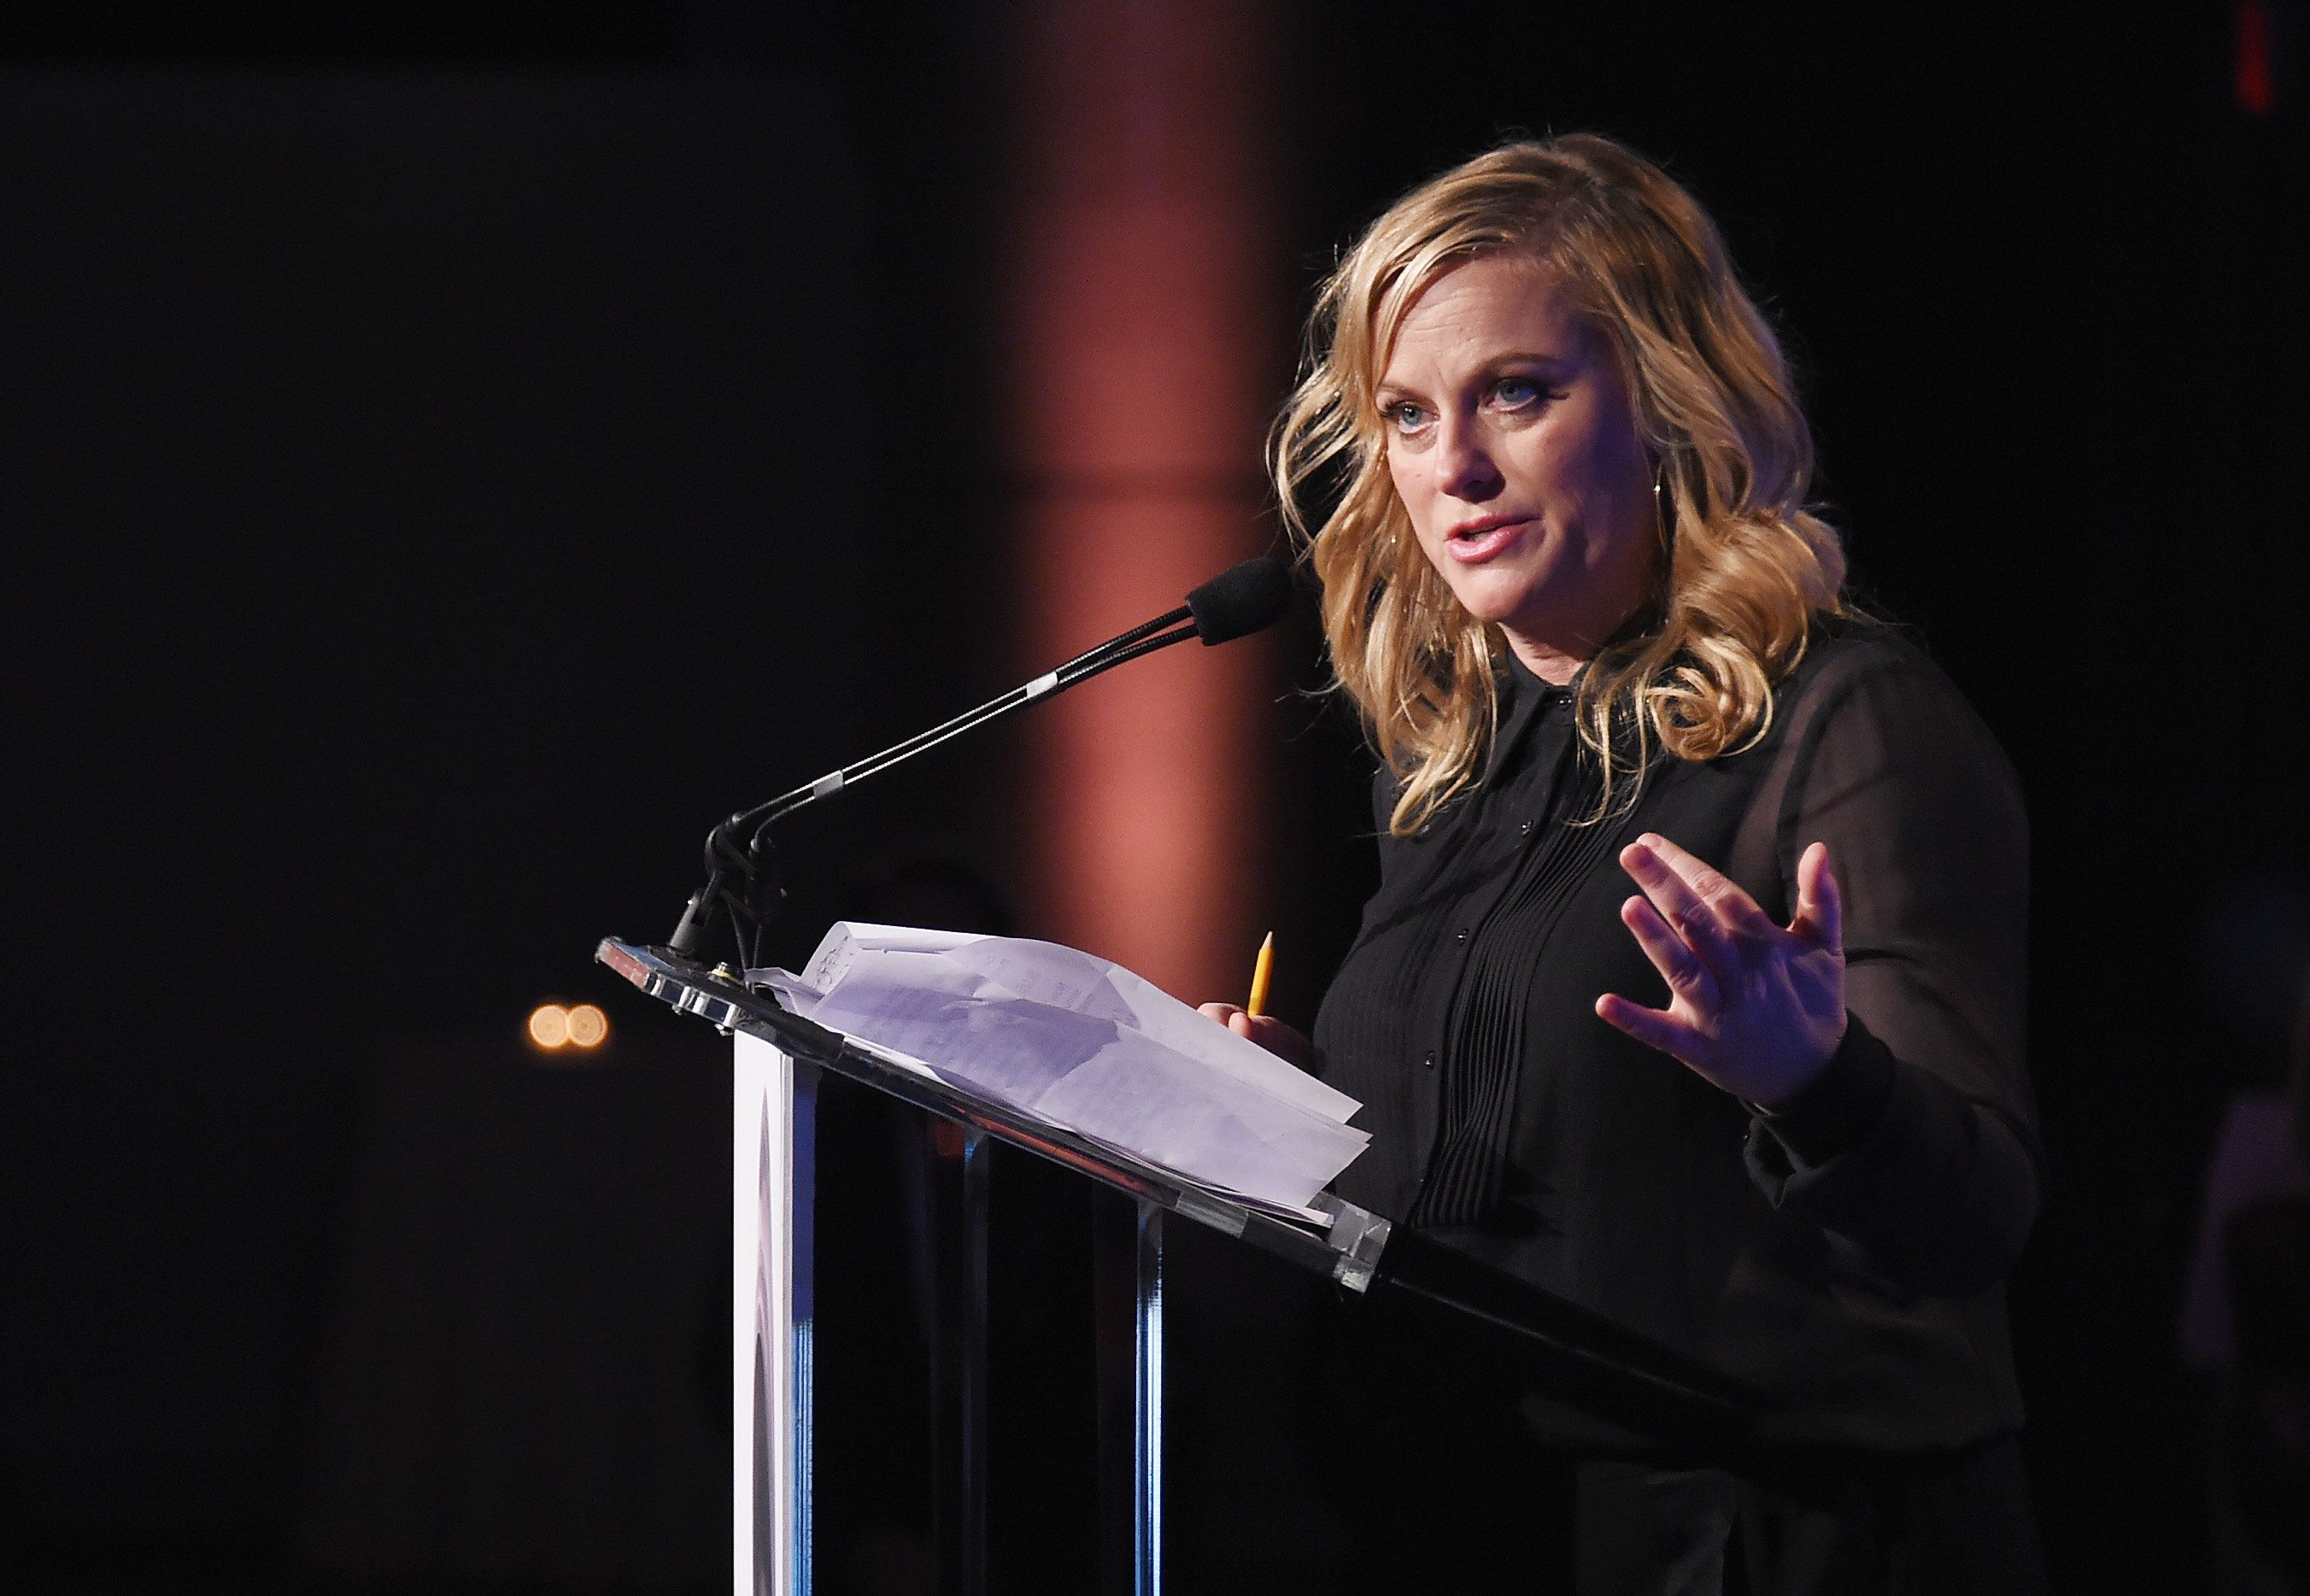 NEW YORK, NY - NOVEMBER 13:  Amy Poehler speaks onstage during the Worldwide Orphans 13th Annual Gala on November 13, 2017 at Cipriani Wall Street in New York City.  (Photo by Michael Loccisano/Getty Images for Worldwide Orphans)